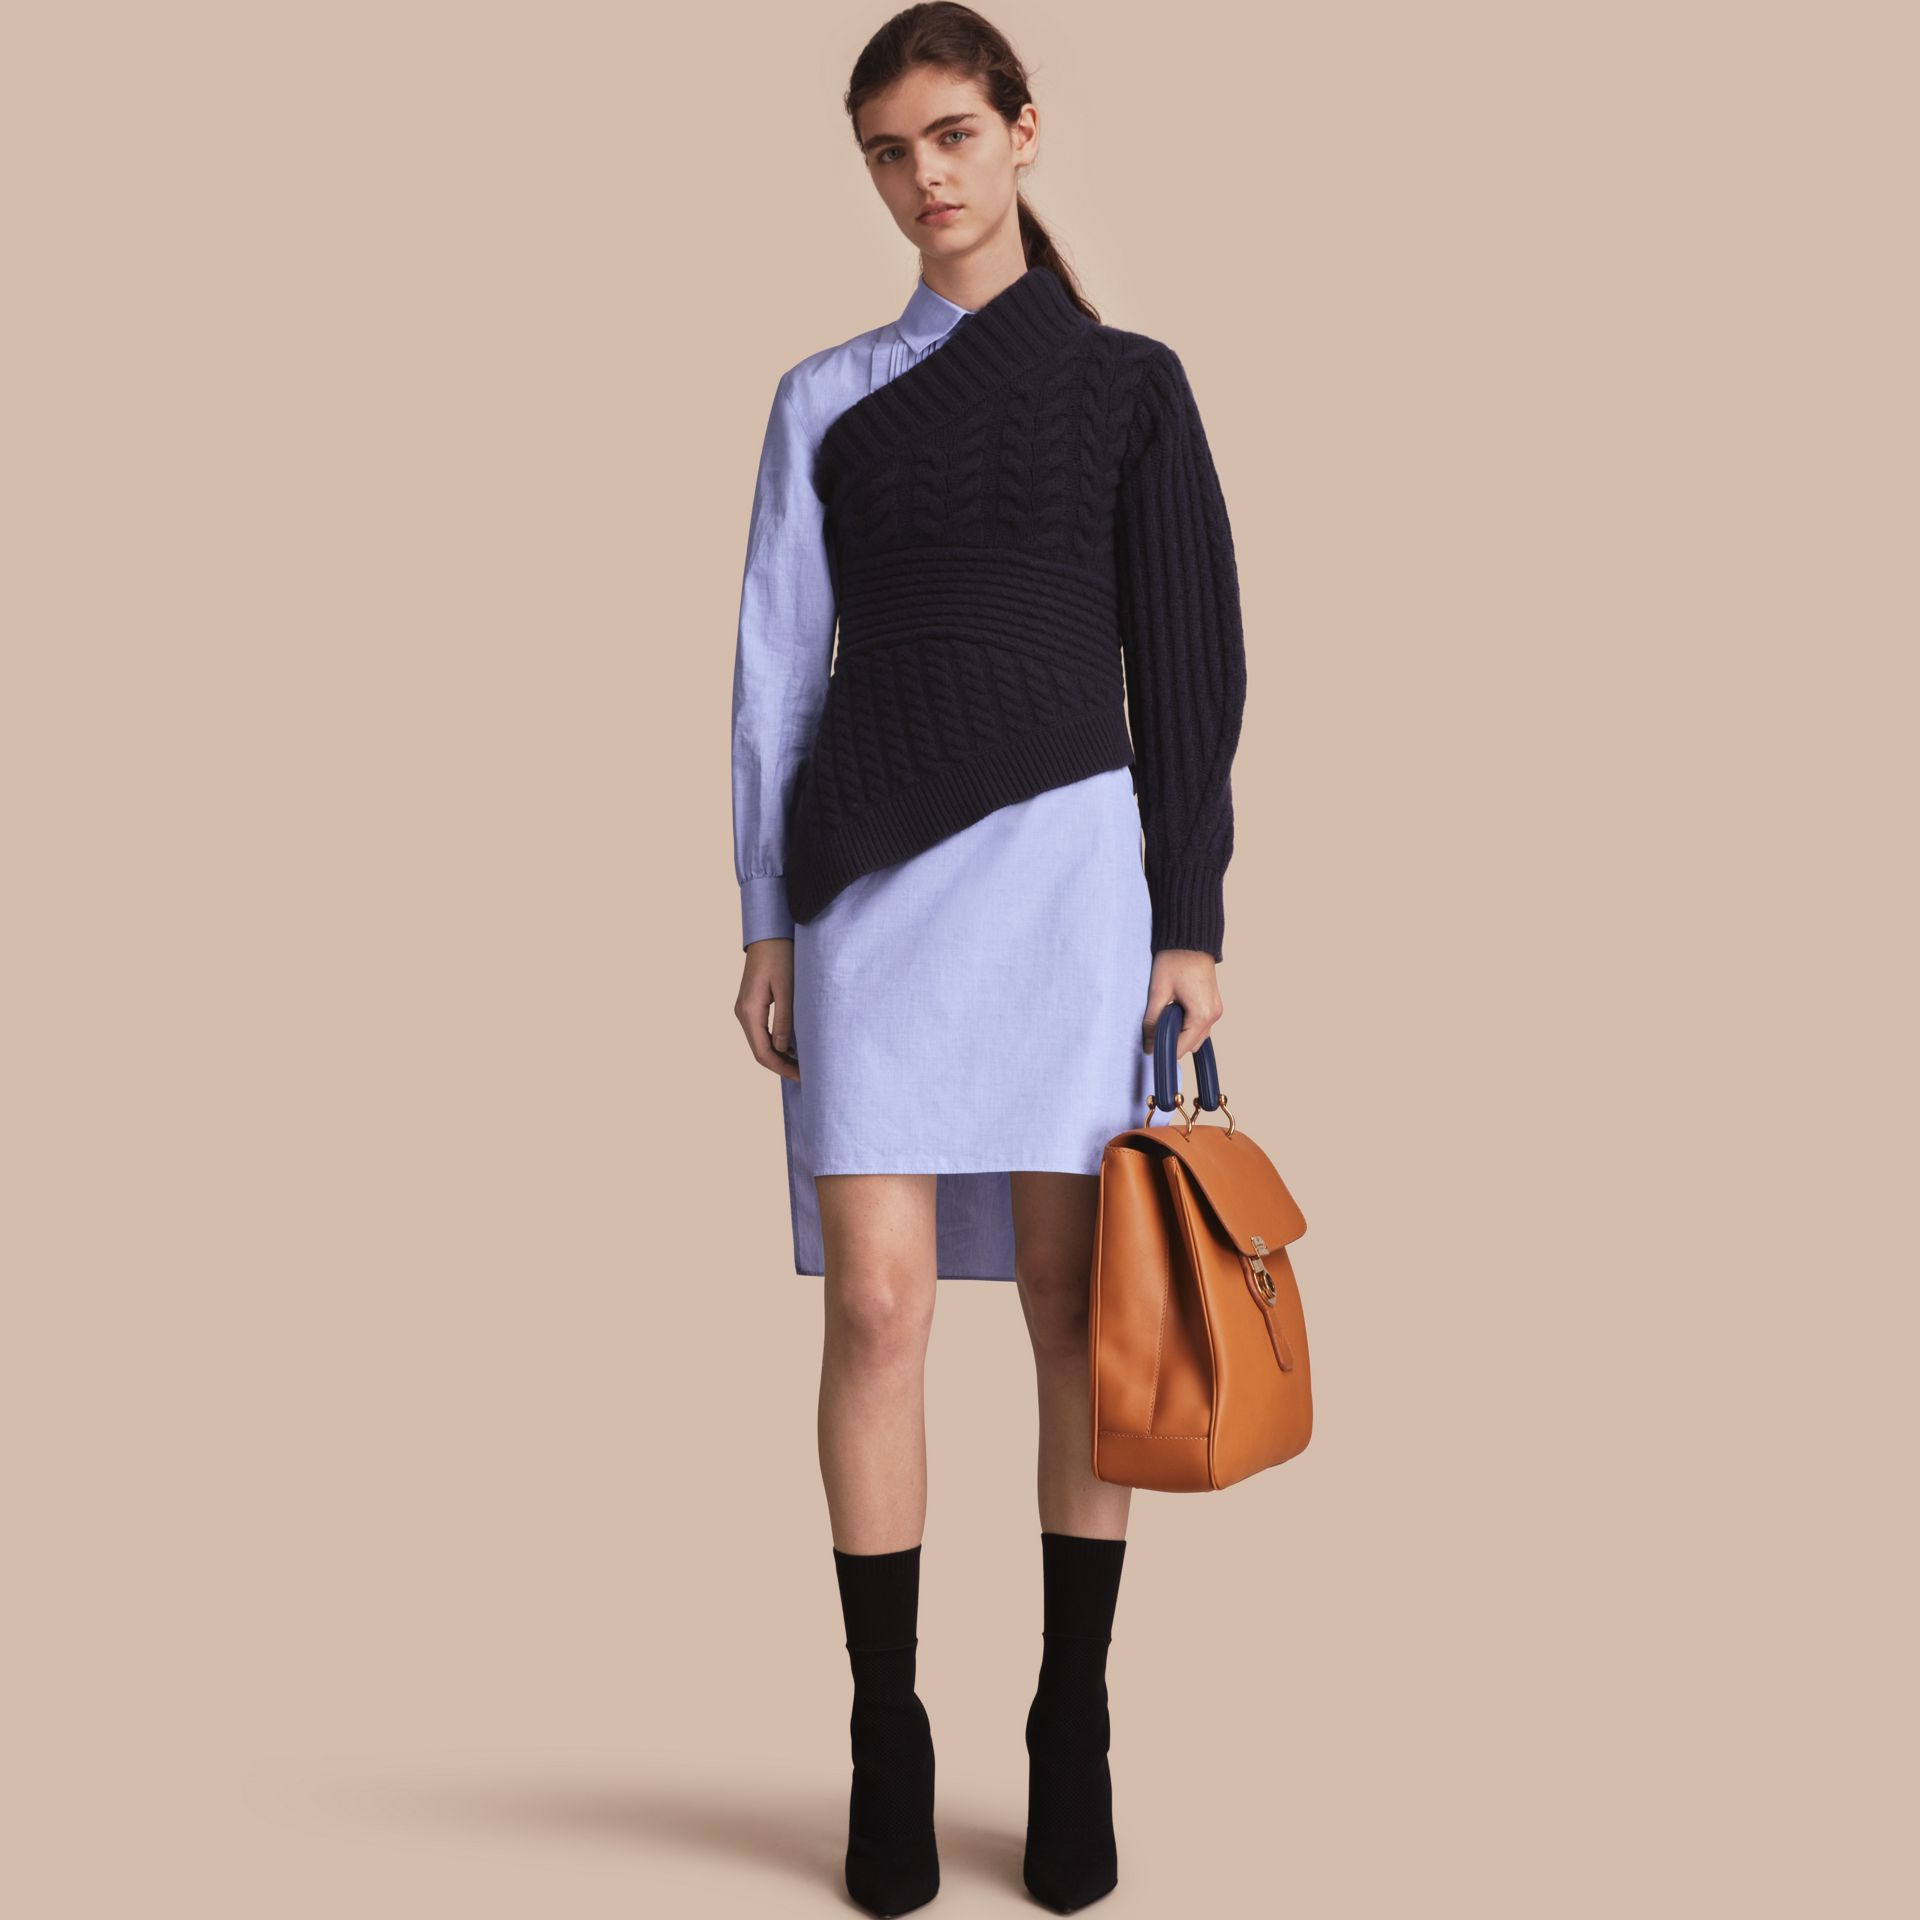 One-shoulder Cable Knit Cashmere Sweater in Navy - Women | Burberry - gallery image 1